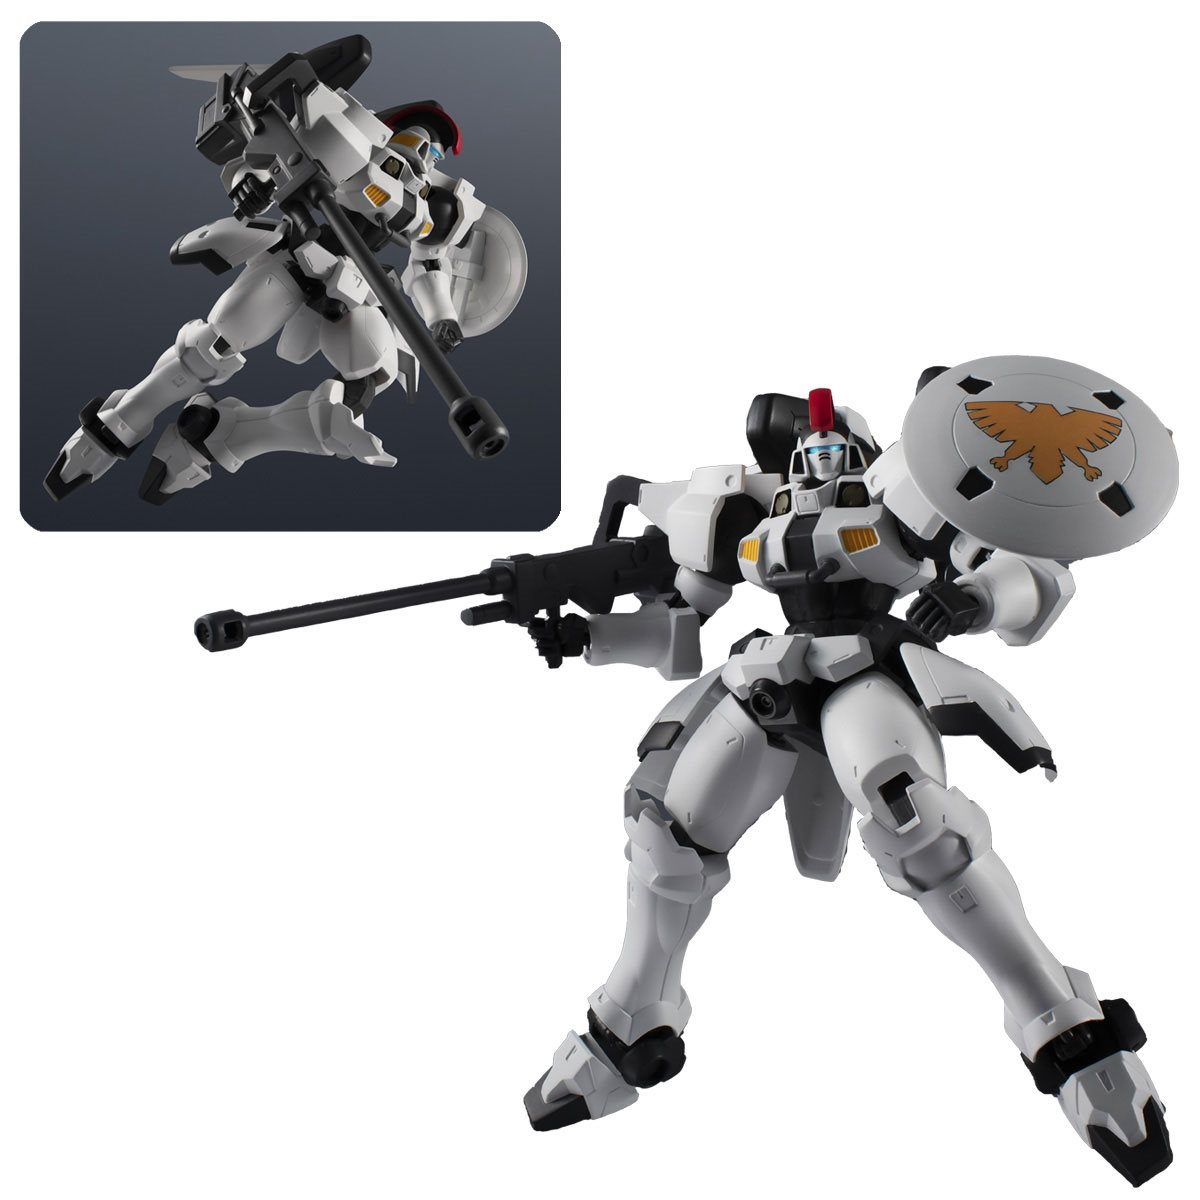 Mobile Report Gundam Wing Oz 00ms Tallgeese Gundam Universe Action Figure Quatre is wounded, and zechs refuses to fight for the romfeller foundation anymore. mobile report gundam wing oz 00ms tallgeese gundam universe action figure